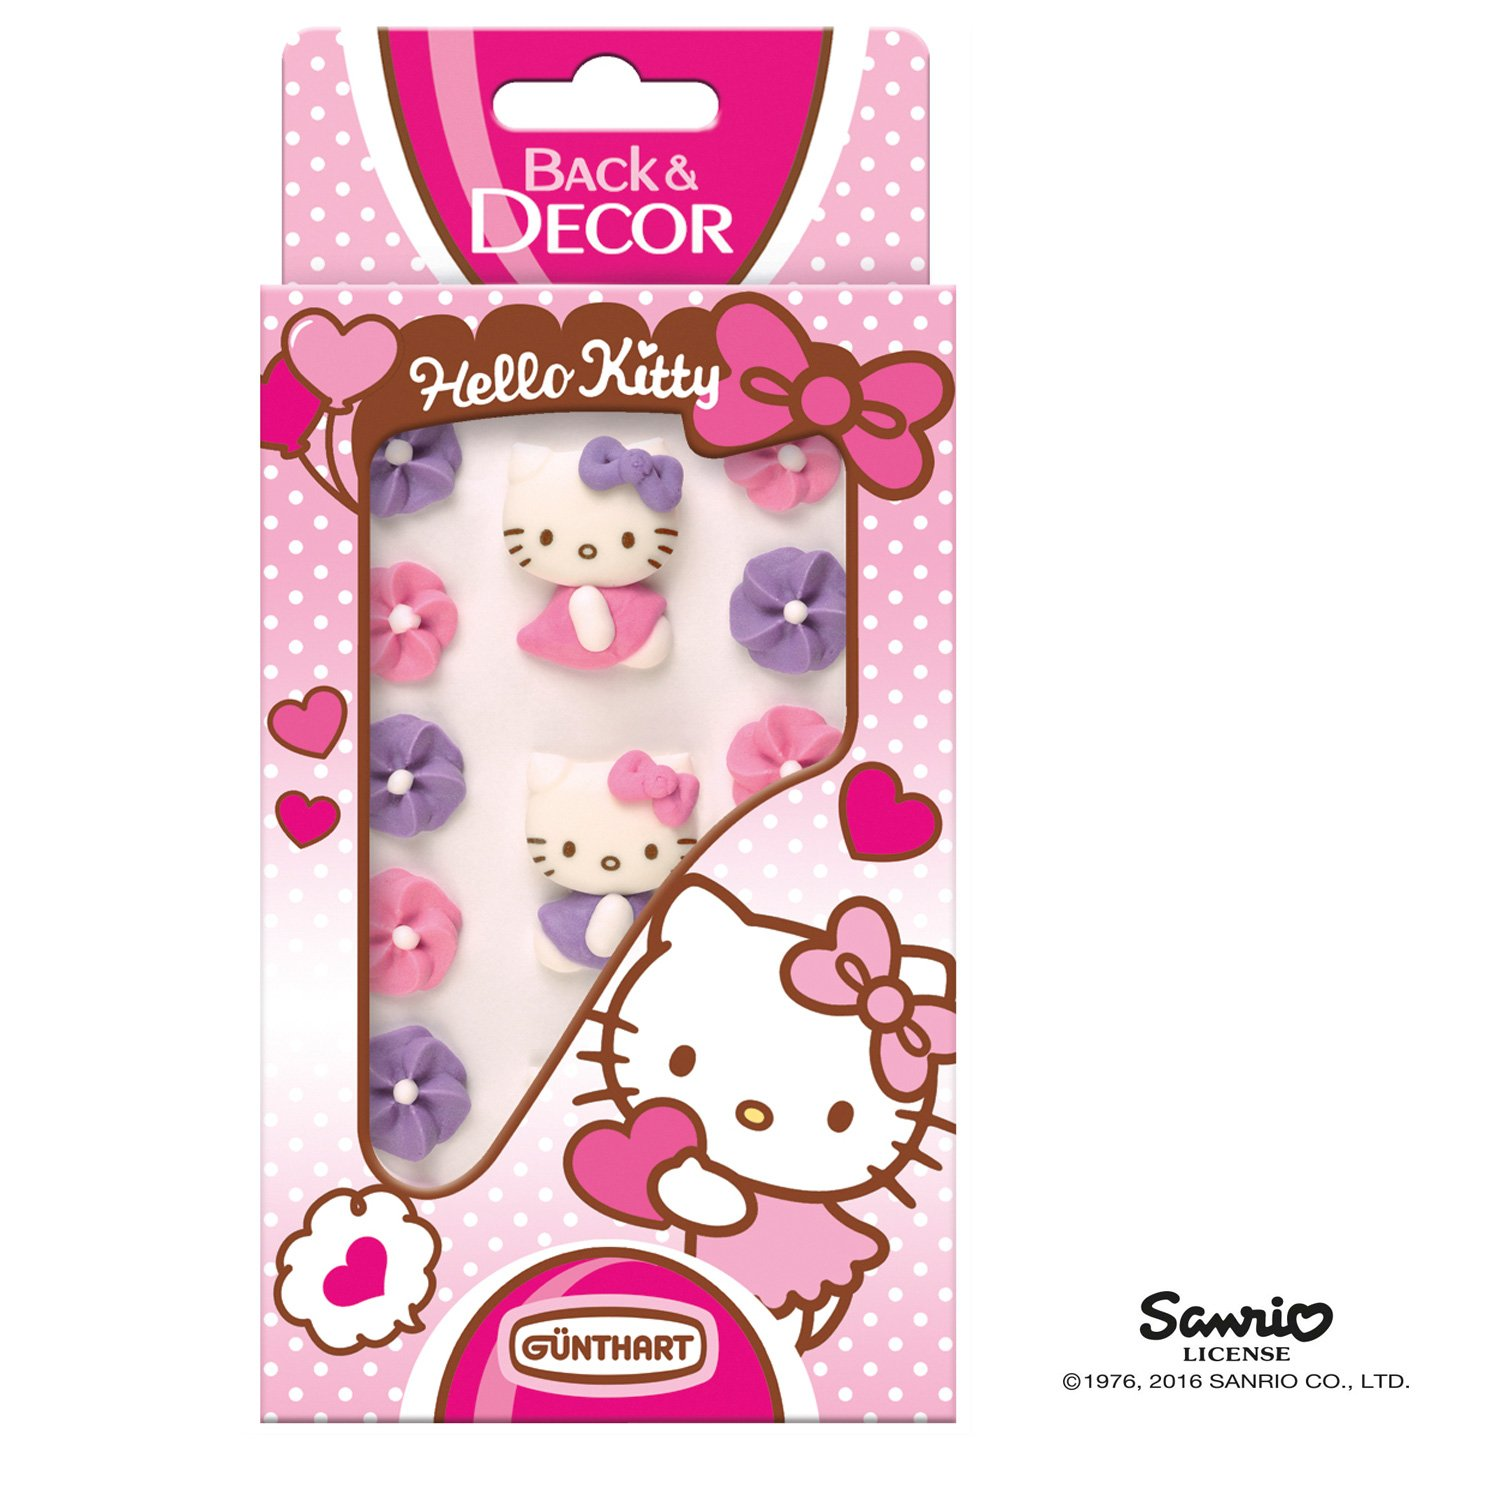 Günthart BackDecor Hello Kitty Zuckerfiguren mit Blumen